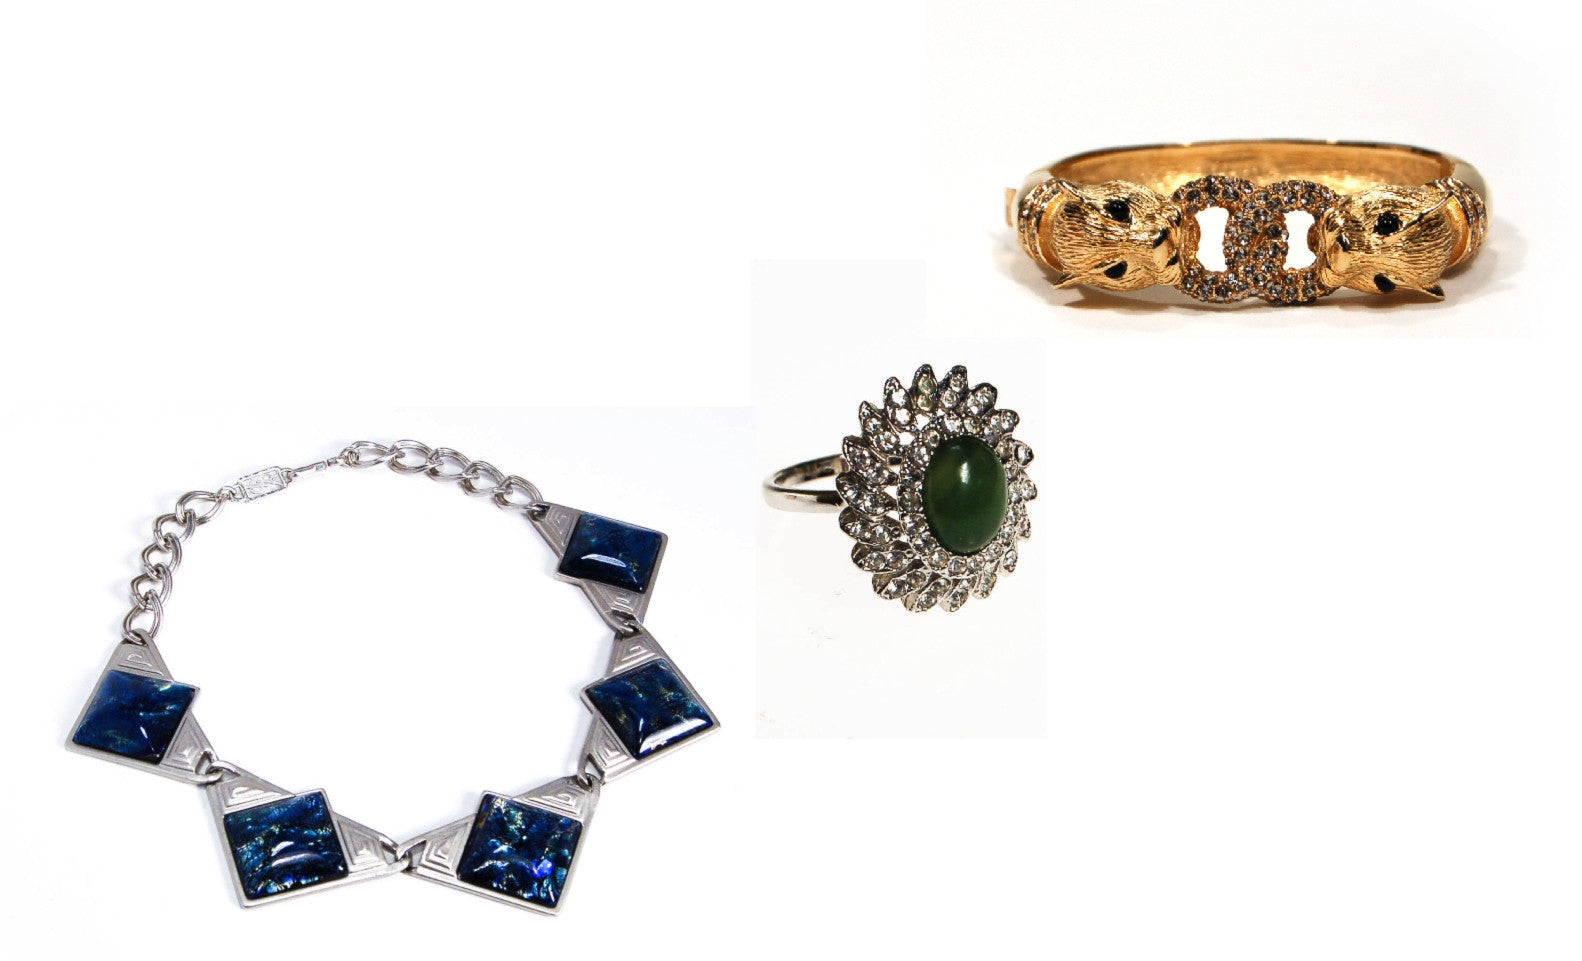 YSL DICHROIC BLUE GLASS NECKLACE, HUGE CZ AND JADE COCKTAIL STATEMENT RING, CUBIC ZIRCONIA, CINER DOUBLE PANTHER BRACELET